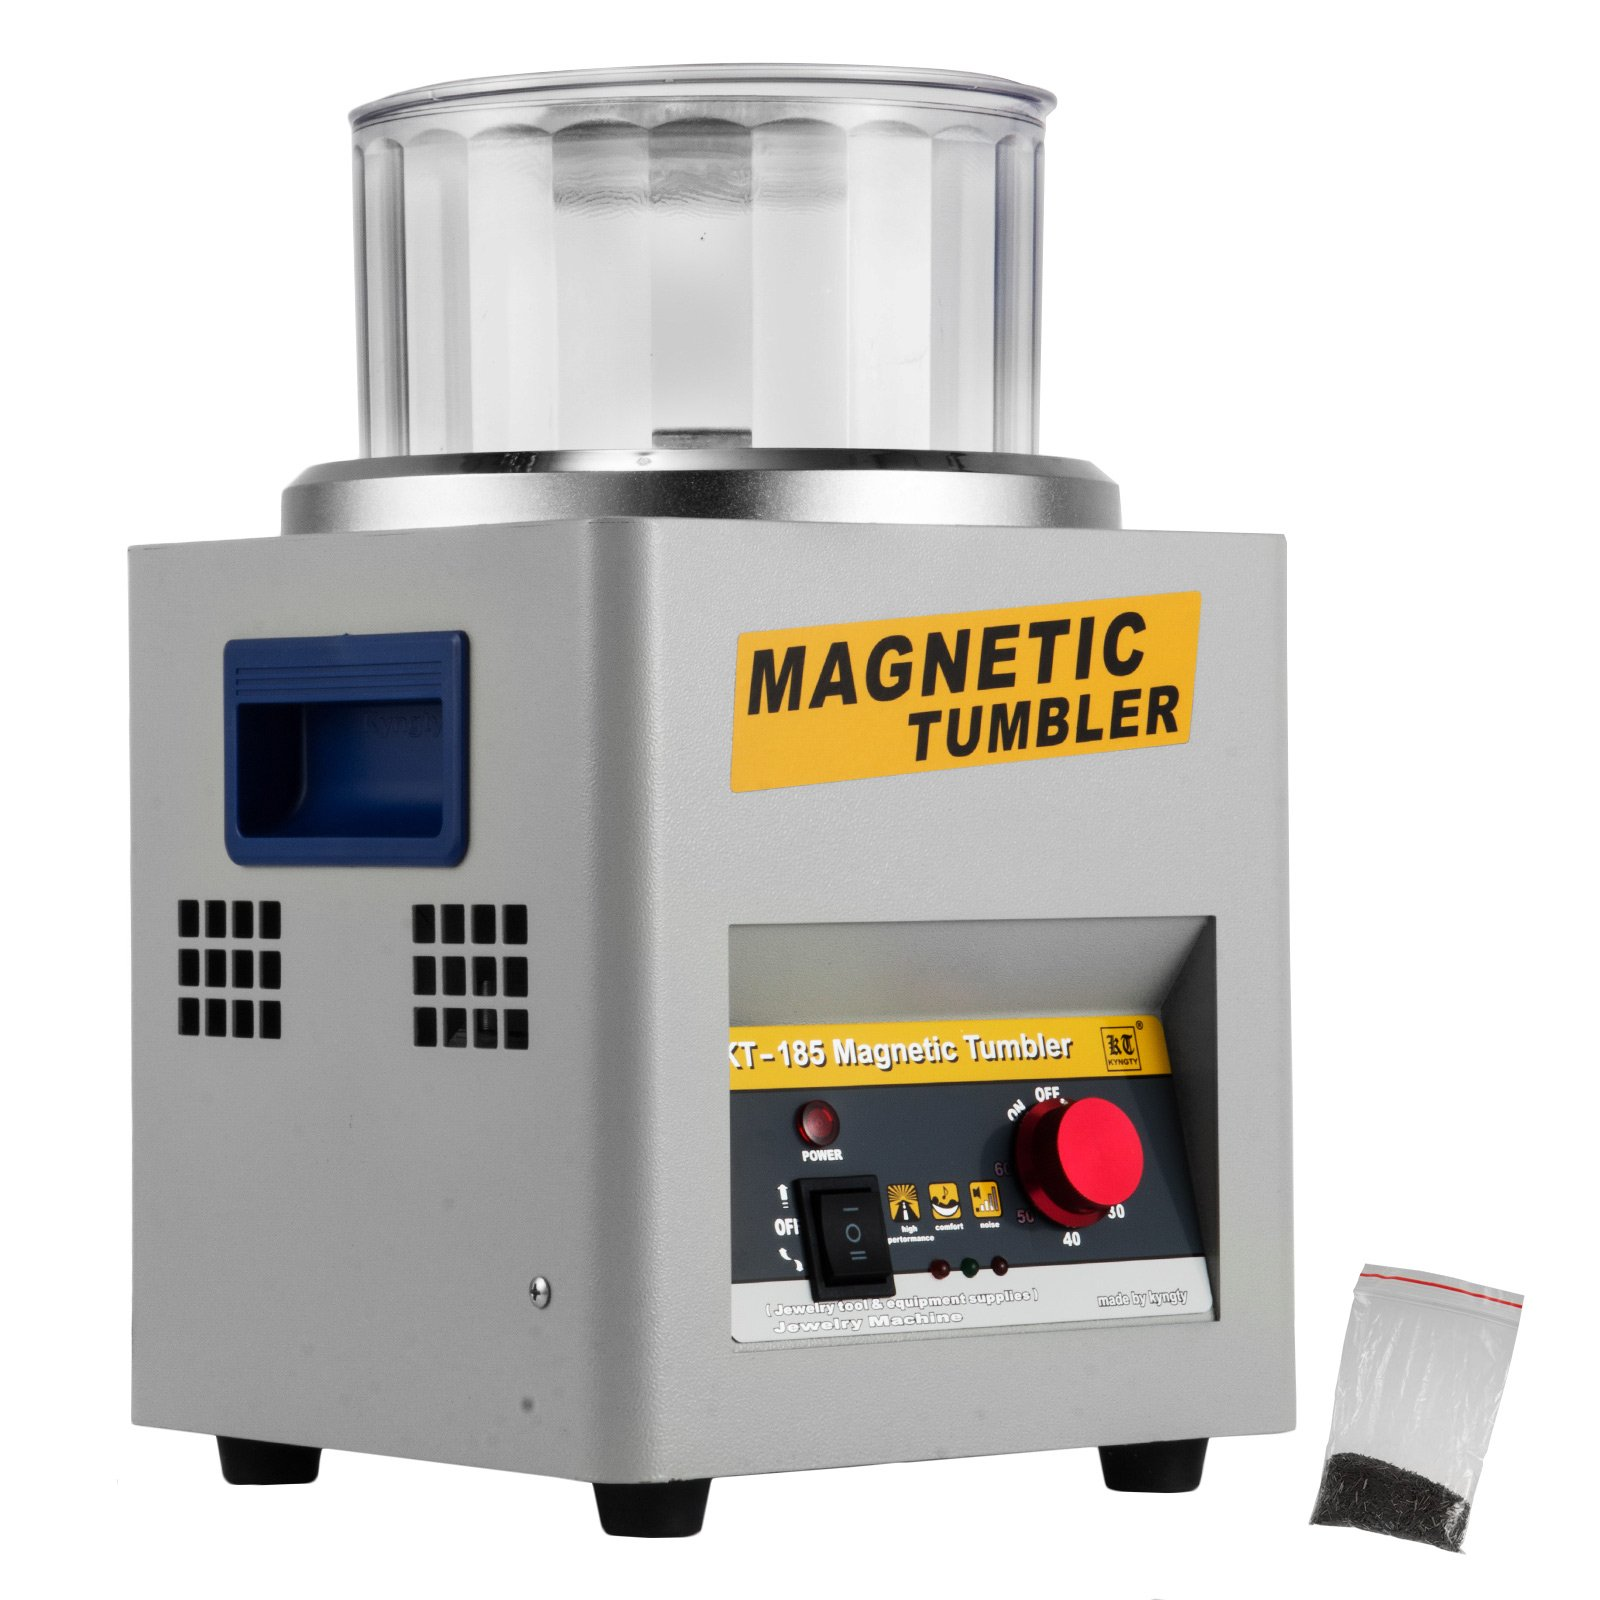 Happybuy Magnetic Tumbler 180mm Jewelry Polisher Tumbler 2000 RPM KT-185 Jewelry Polisher Finisher with Adjustable Speed for Jewelry (185mm) by Happybuy (Image #1)